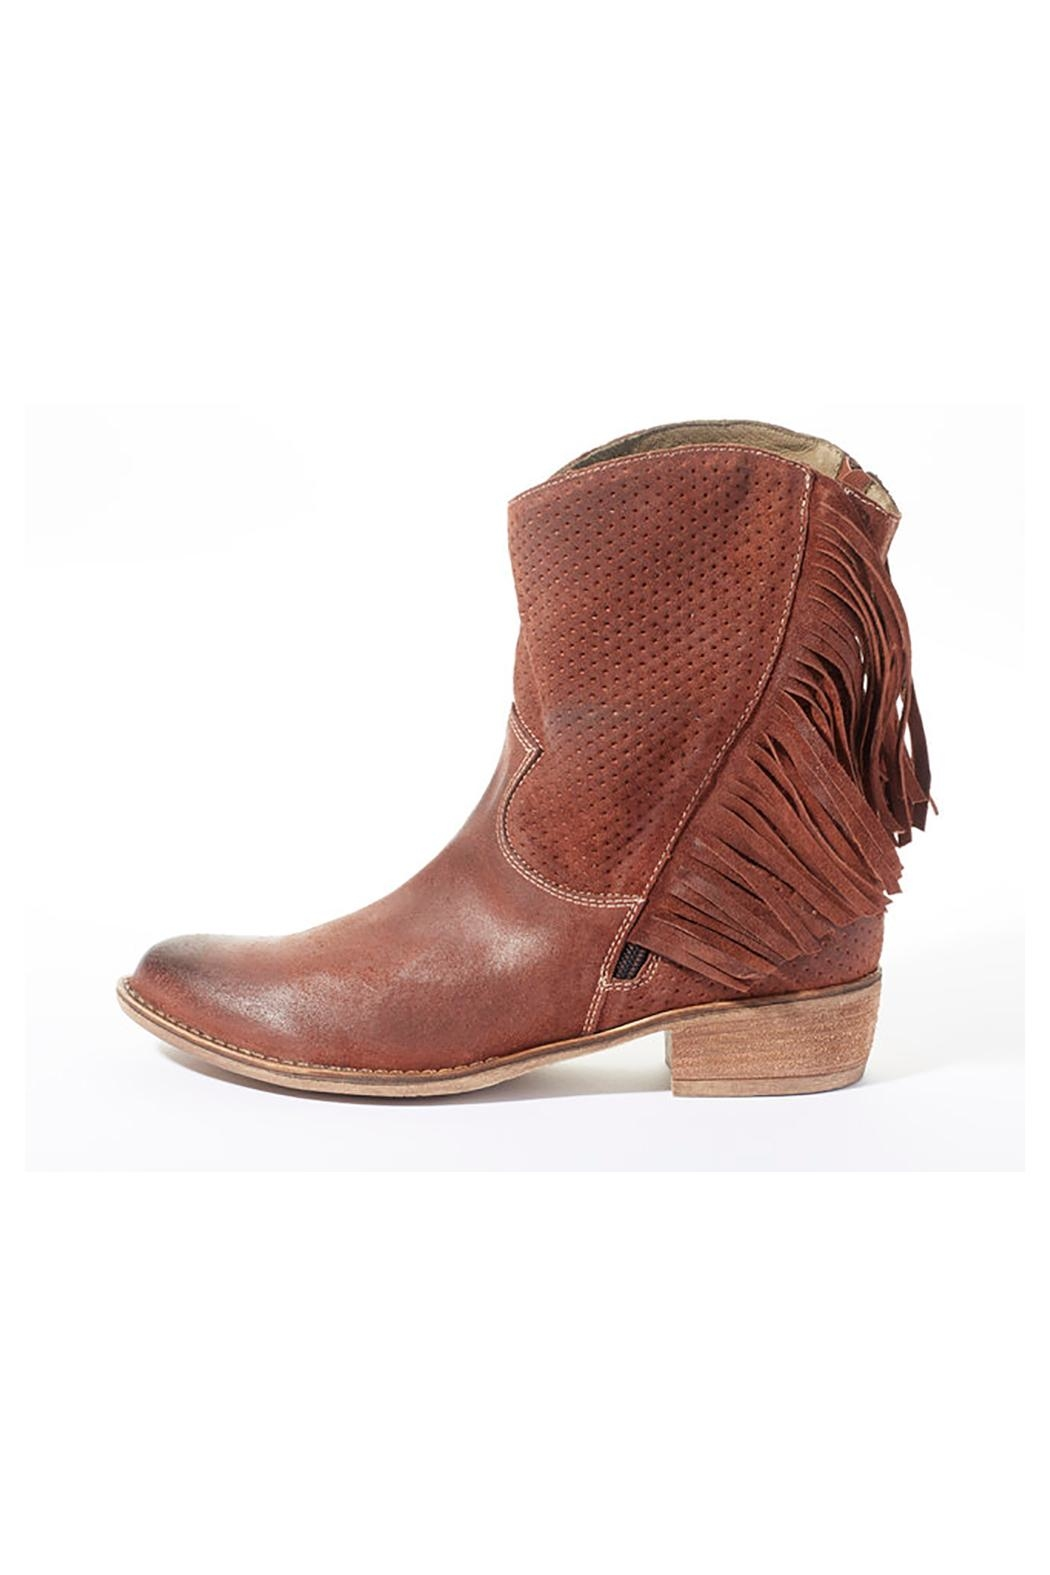 Rebel With Cause Fringe Leather Boots - Front Full Image